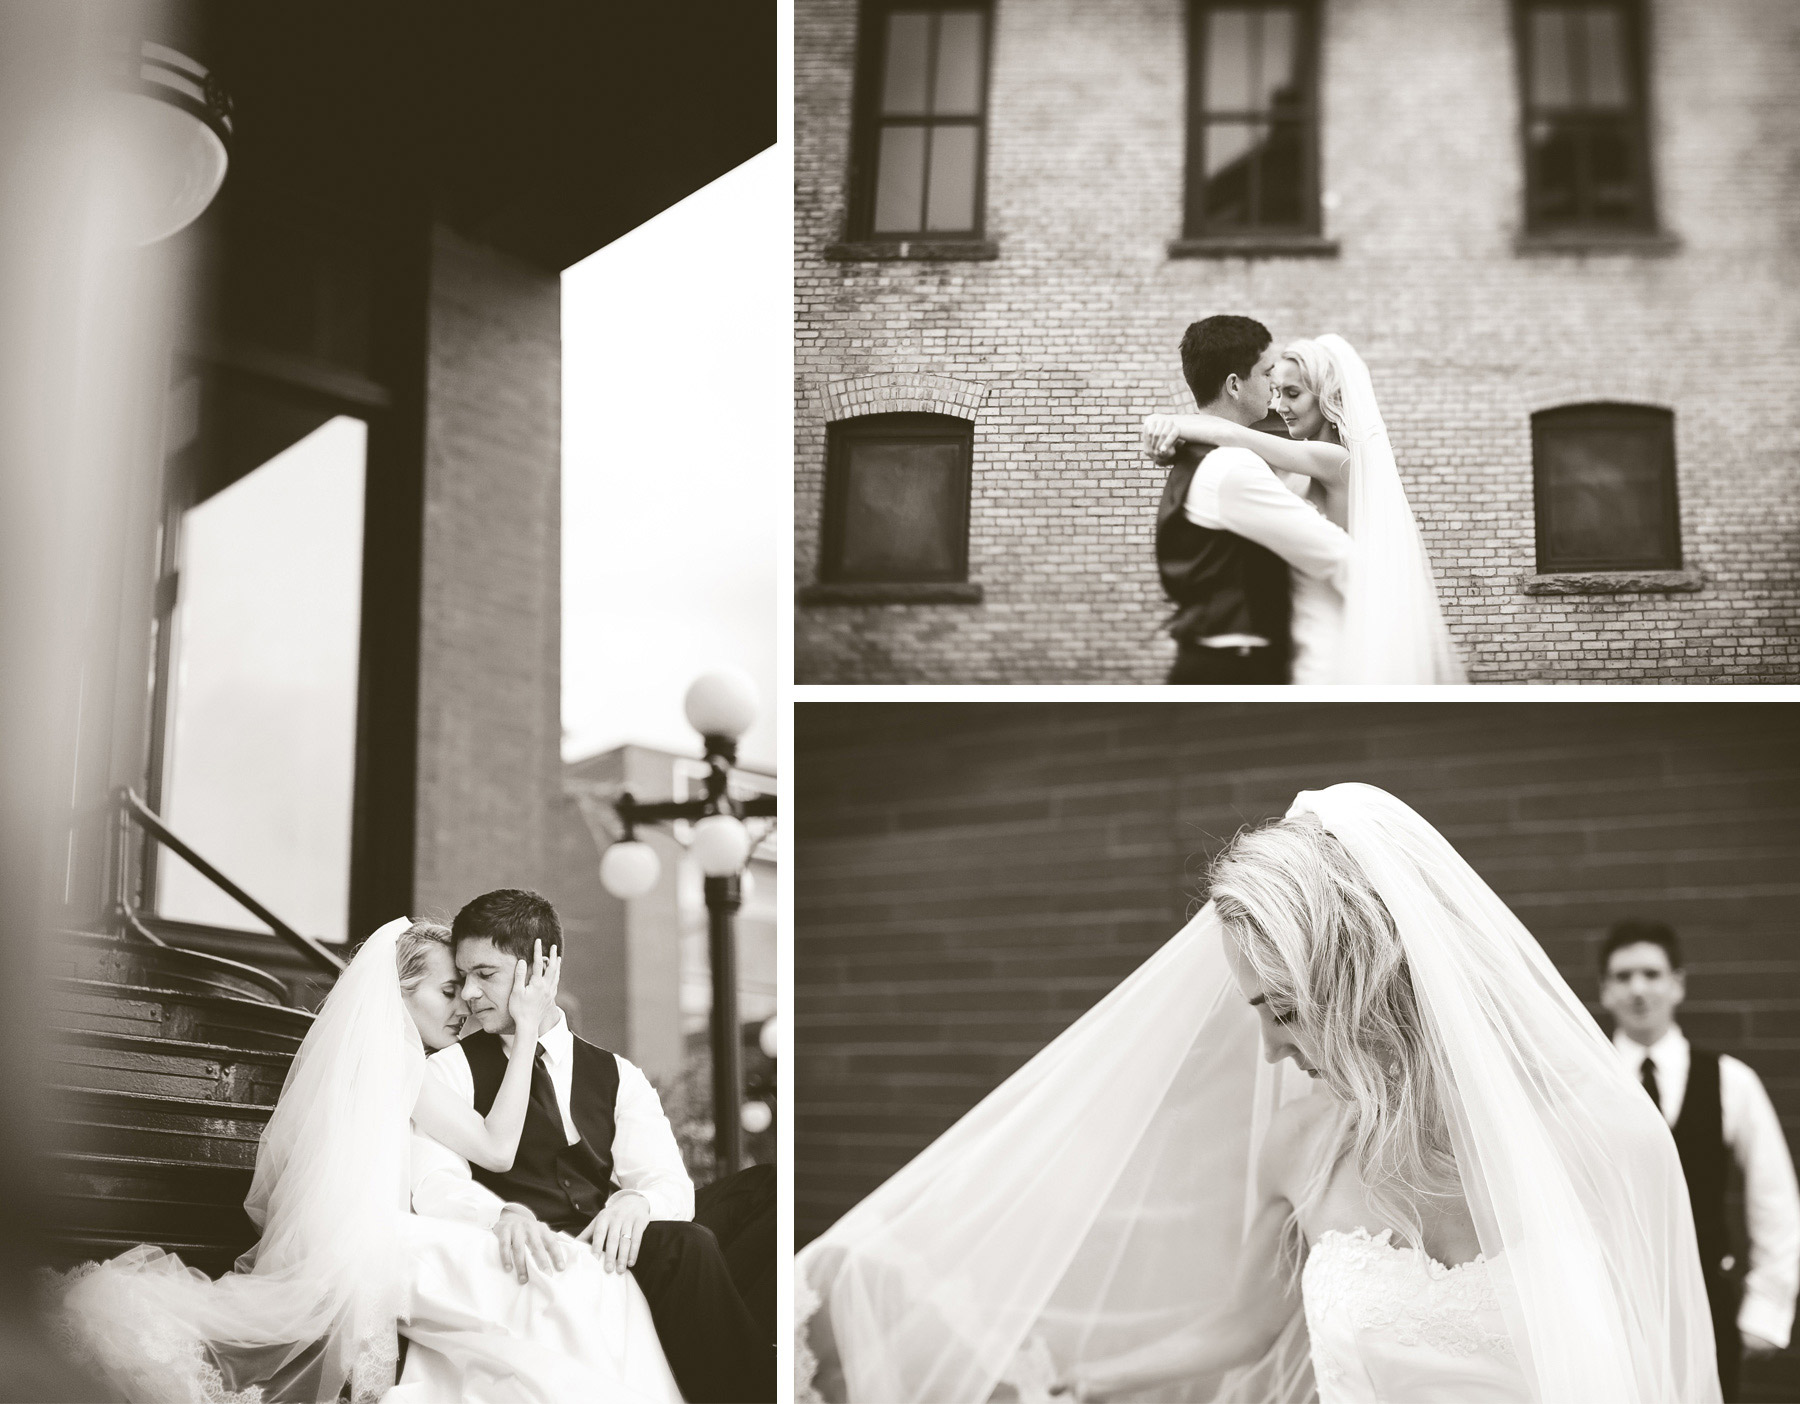 20-Saint-Paul-Minnesota-Wedding-Photographer-by-Andrew-Vick-Photography-Summer-Bride-Groom-Embrace-Romance-Veil-Sepia-Laura-and-Tim.jpg